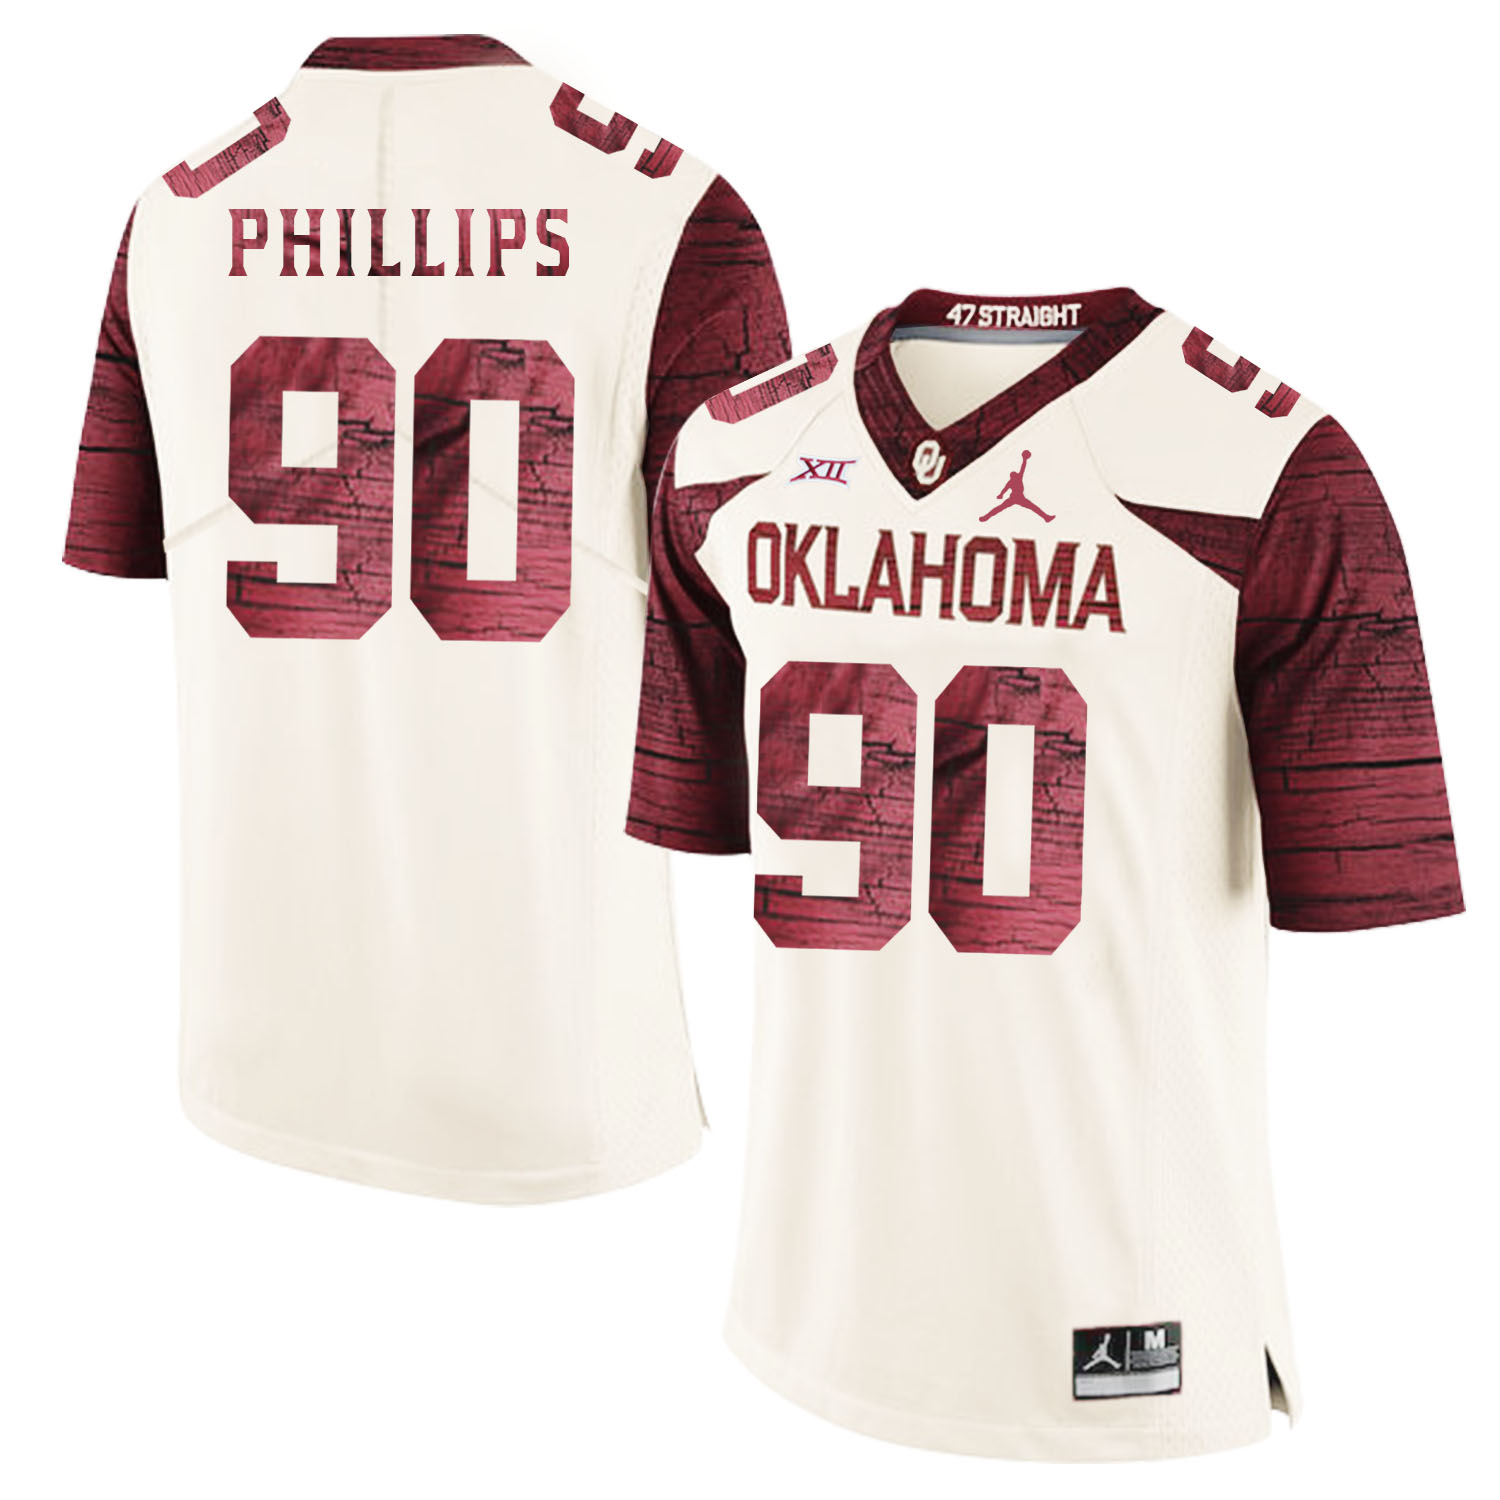 Oklahoma Sooners 90 Jordan Phillips White 47 Game Winning Streak College Football Jersey